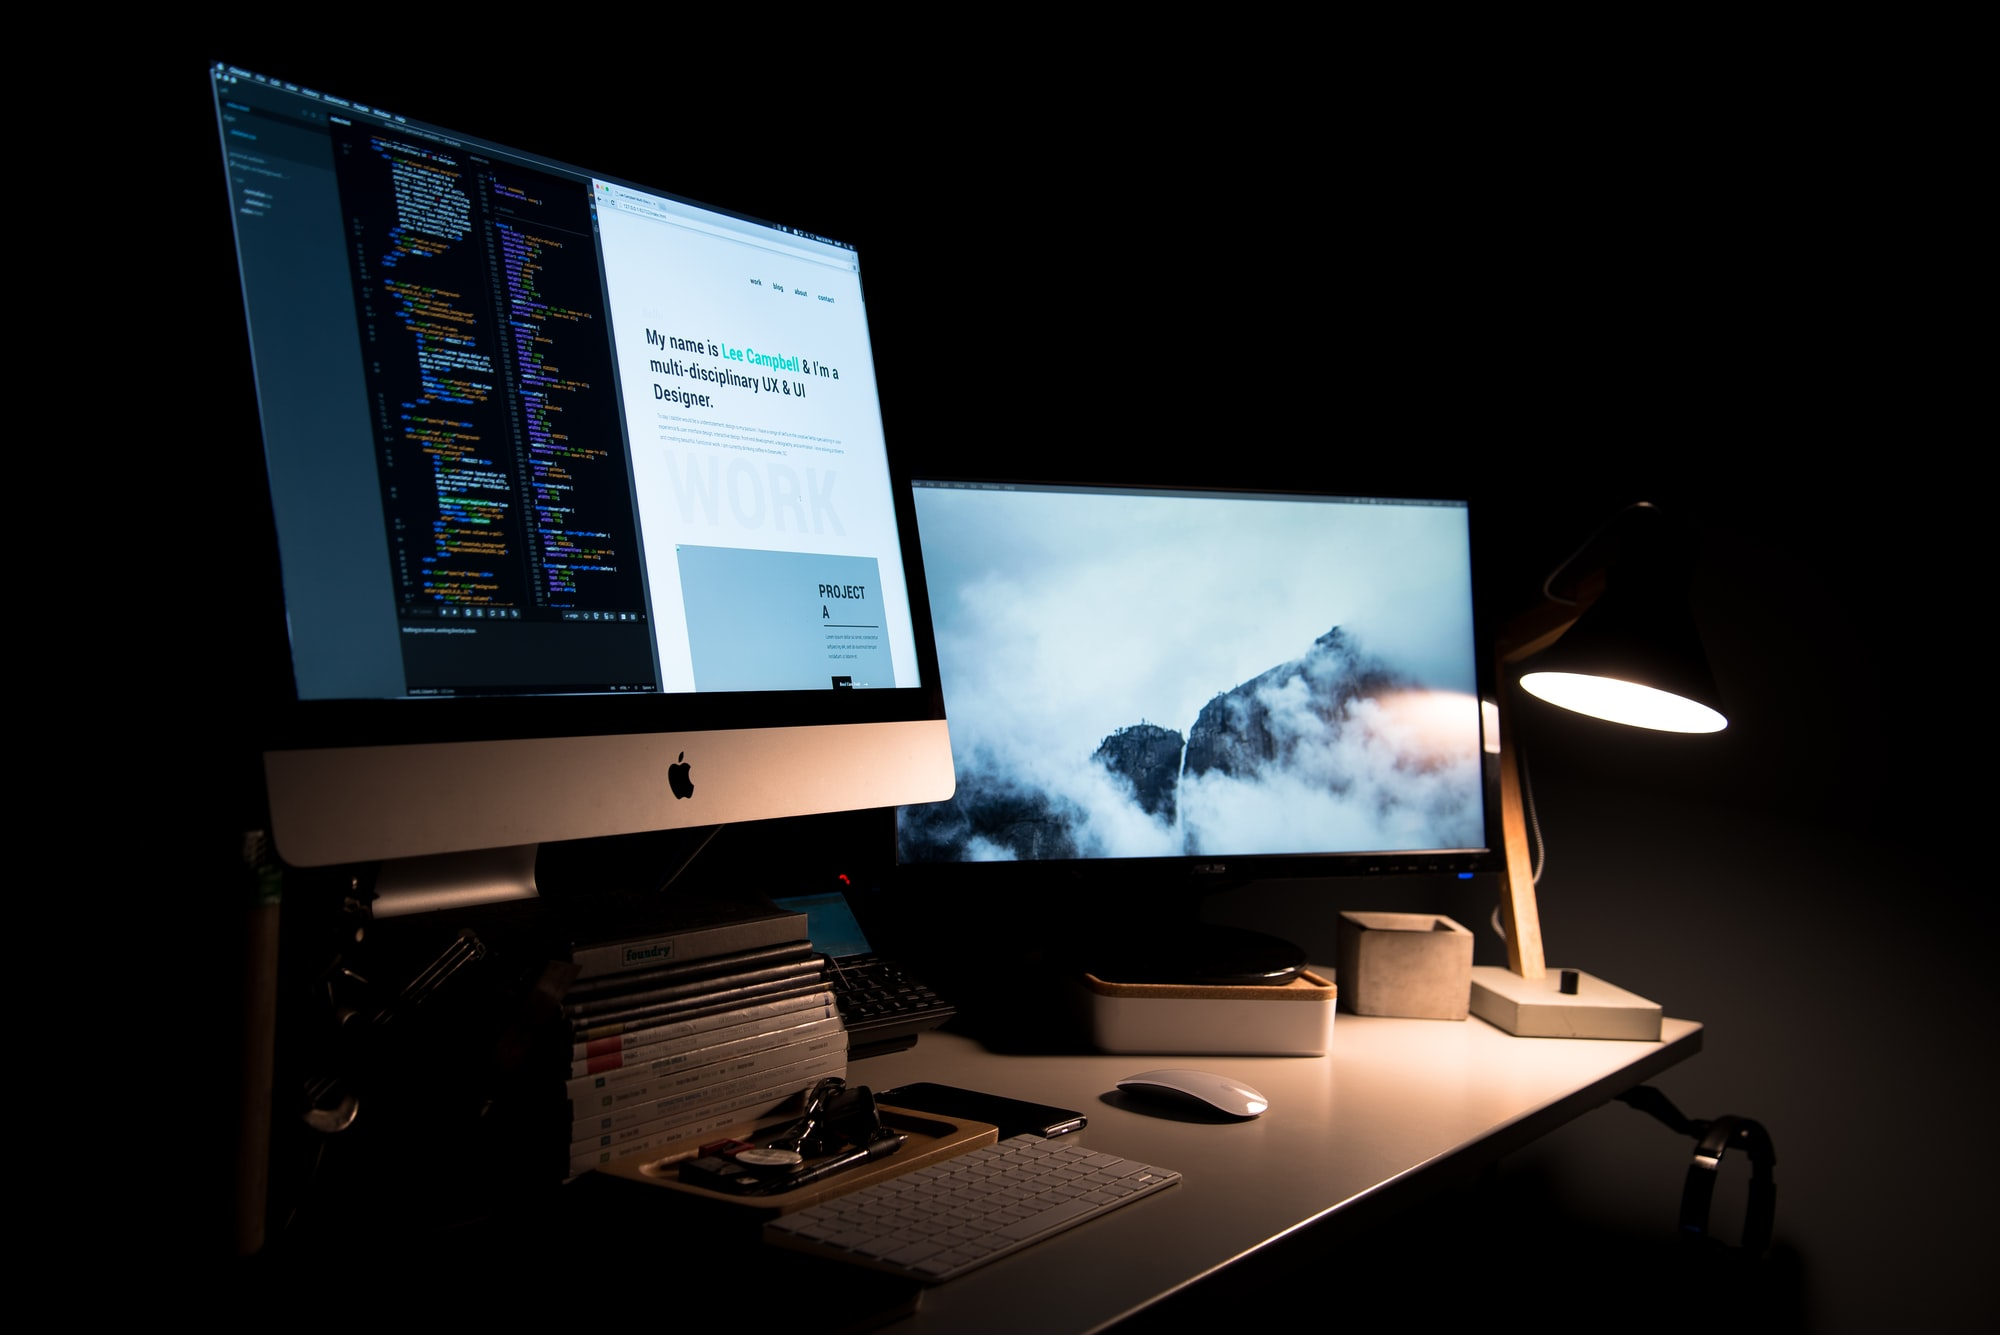 How Website Design Impacts the Overall User Experience